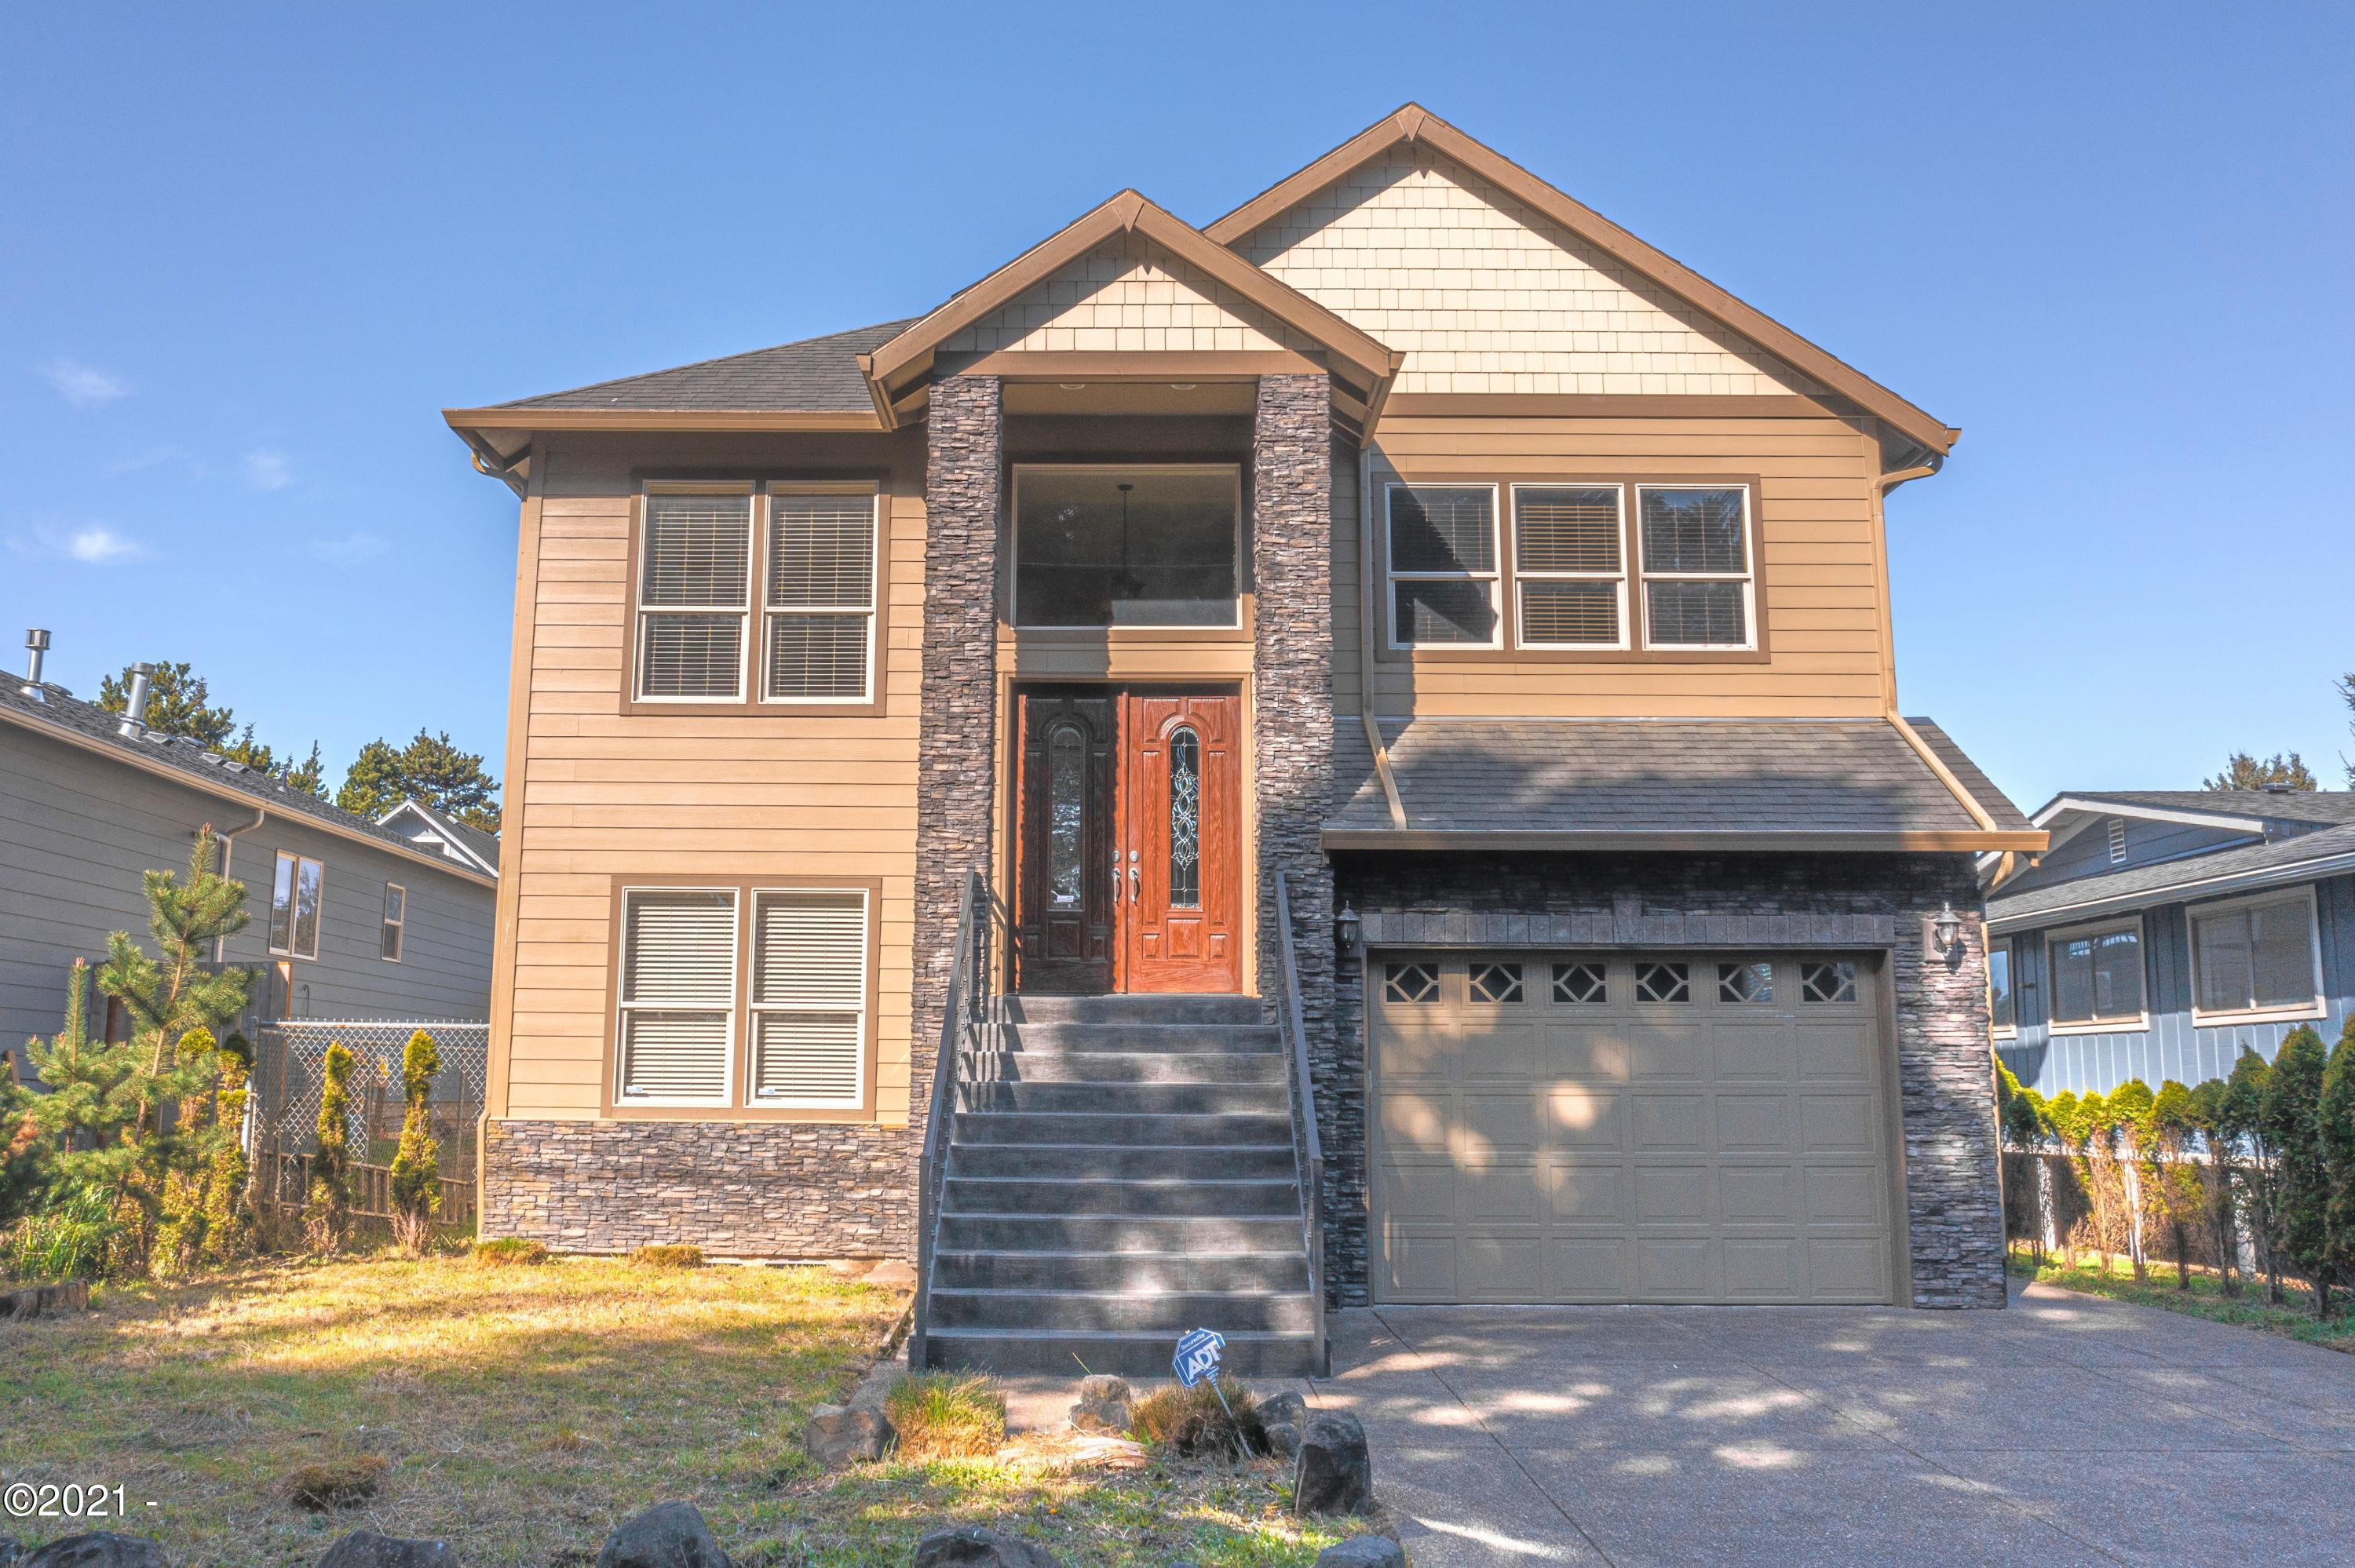 703 SE Keel Ave, Lincoln City, OR 97367 - Front view